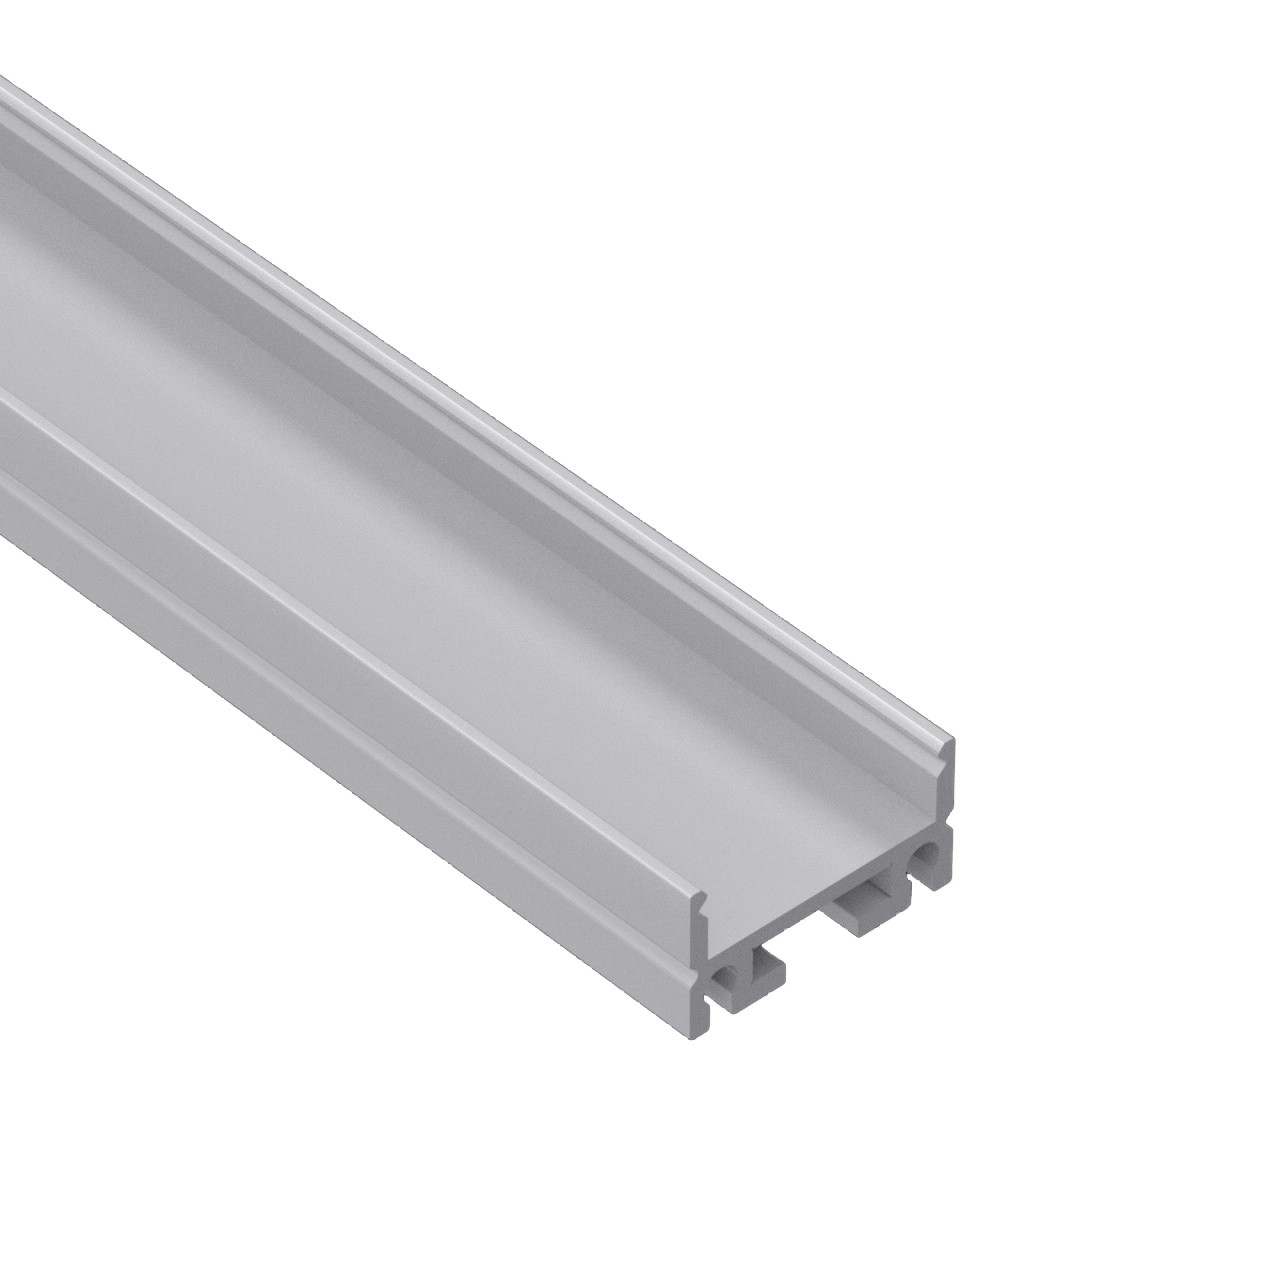 AT4 Surface Mount Led Aluminum Profile Manufacturers, AT4 Surface Mount Led Aluminum Profile Factory, Supply AT4 Surface Mount Led Aluminum Profile